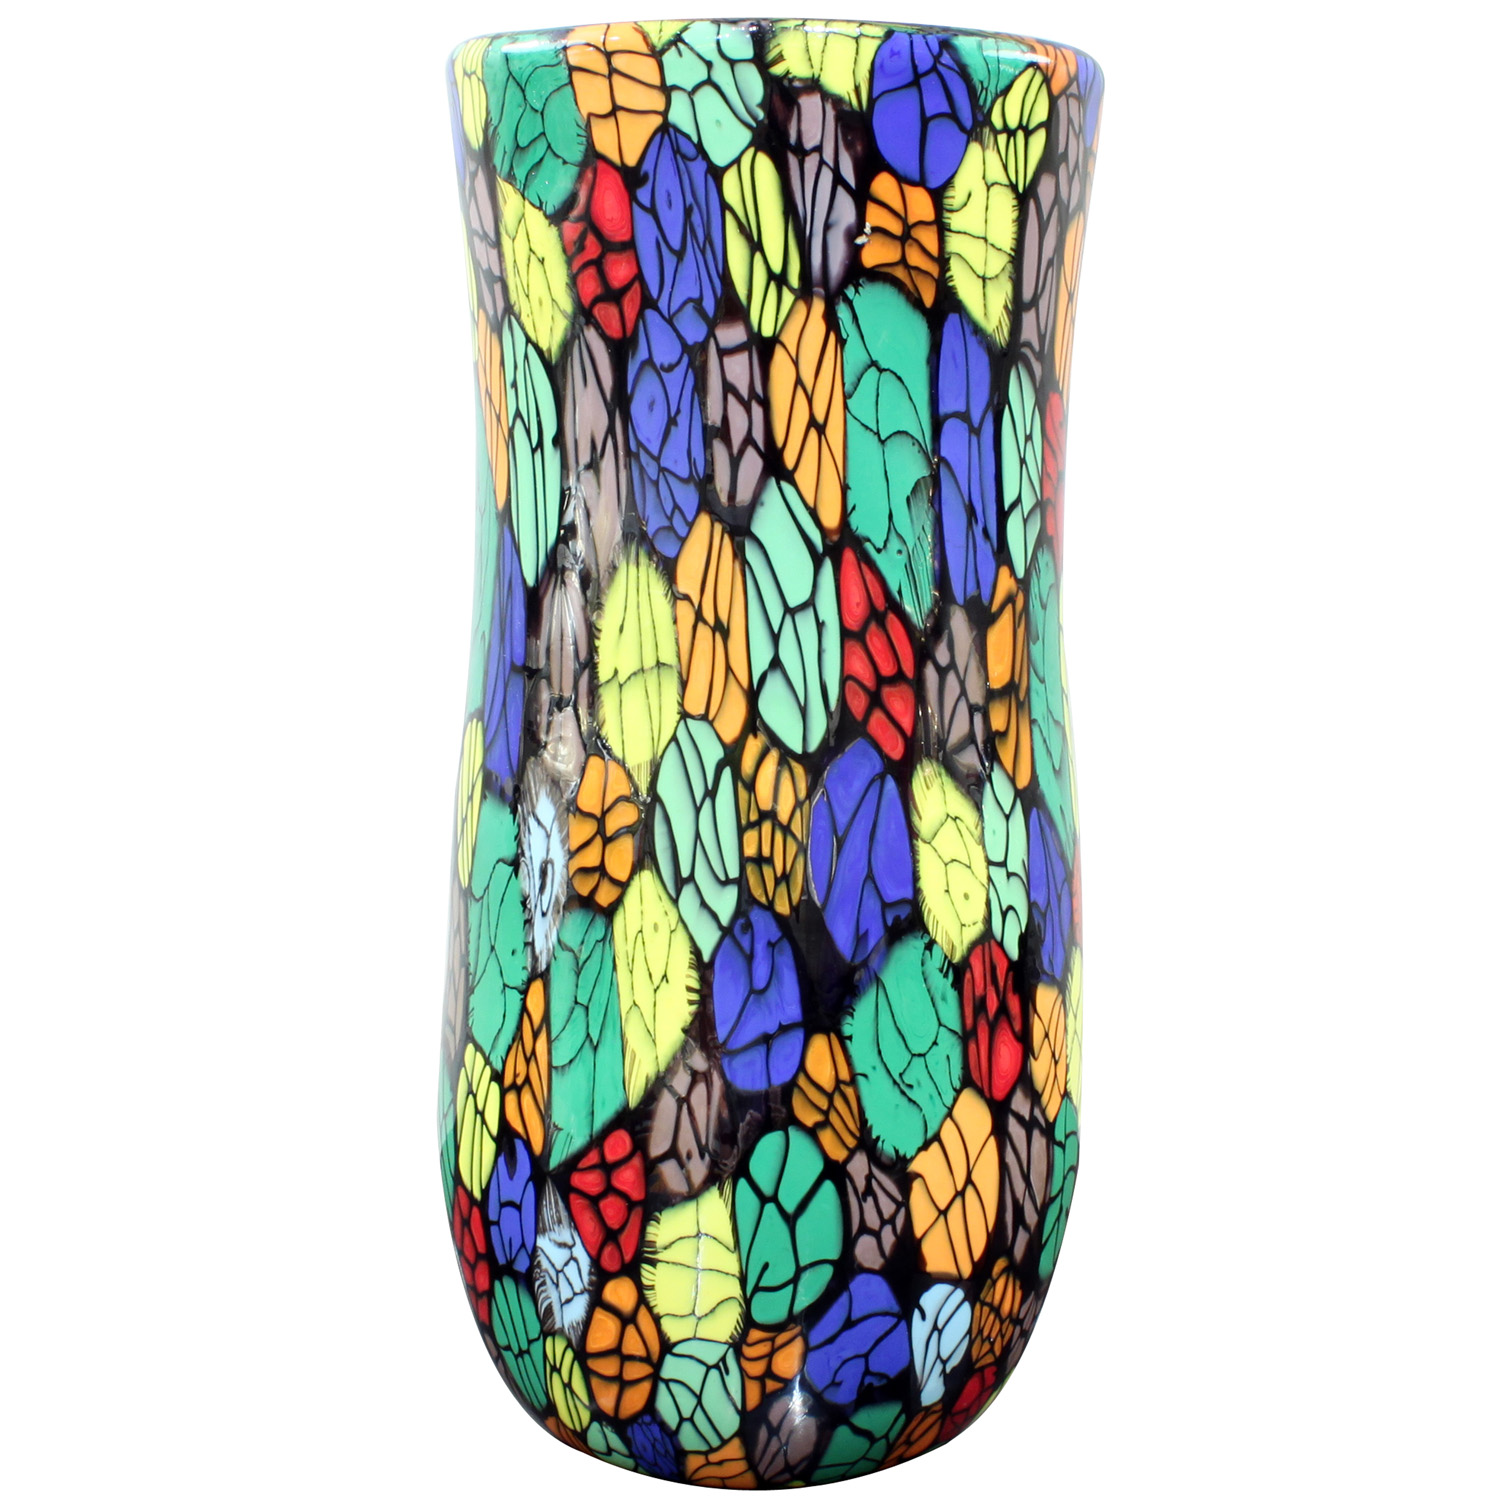 V Ferro 45 colorful widetop signed glass80 hires main.jpg